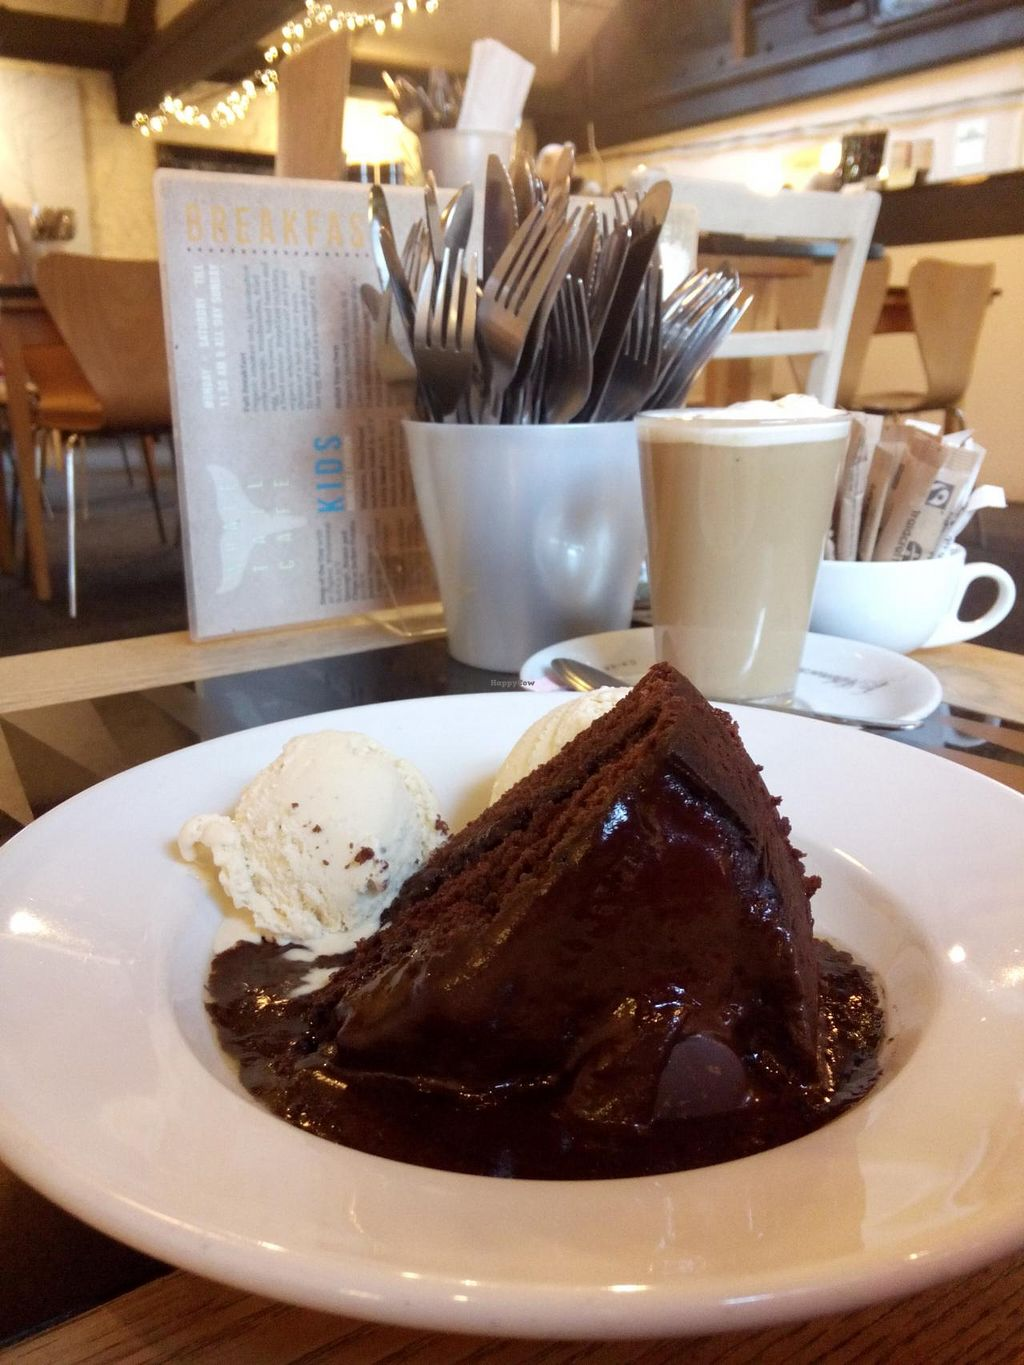 """Photo of The Whale Tail Cafe  by <a href=""""/members/profile/radiocaz"""">radiocaz</a> <br/>Vegan Choc Fudge Cake with vegan ice cream <br/> March 9, 2015  - <a href='/contact/abuse/image/791/95286'>Report</a>"""